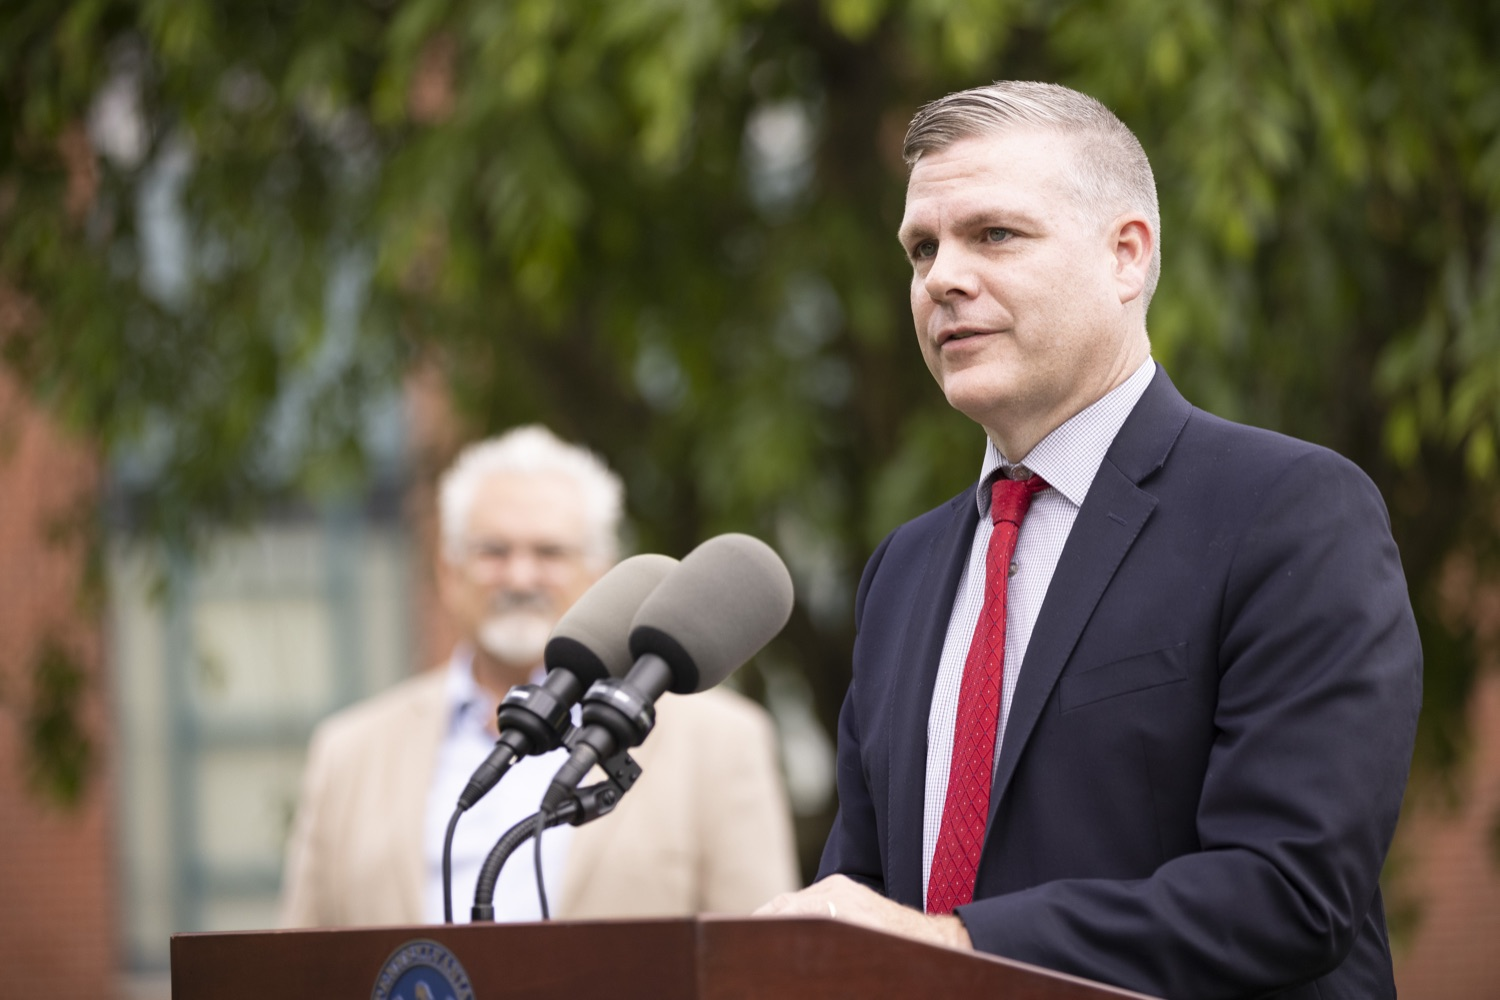 """<a href=""""https://filesource.wostreaming.net/commonwealthofpa/photo/18796_gov_charterSchool_dz_013.jpg"""" target=""""_blank"""">⇣Download Photo<br></a>Superintendent Brian Bliss, Solanco School District speaking with the press.  With overwhelming support among school districts for his charter school accountability plan, Governor Tom Wolf visited J.P. McCaskey High School in Lancaster today to discuss his bipartisan proposal that saves an estimated $395 million a year. Lancaster, PA  June 01, 2021"""